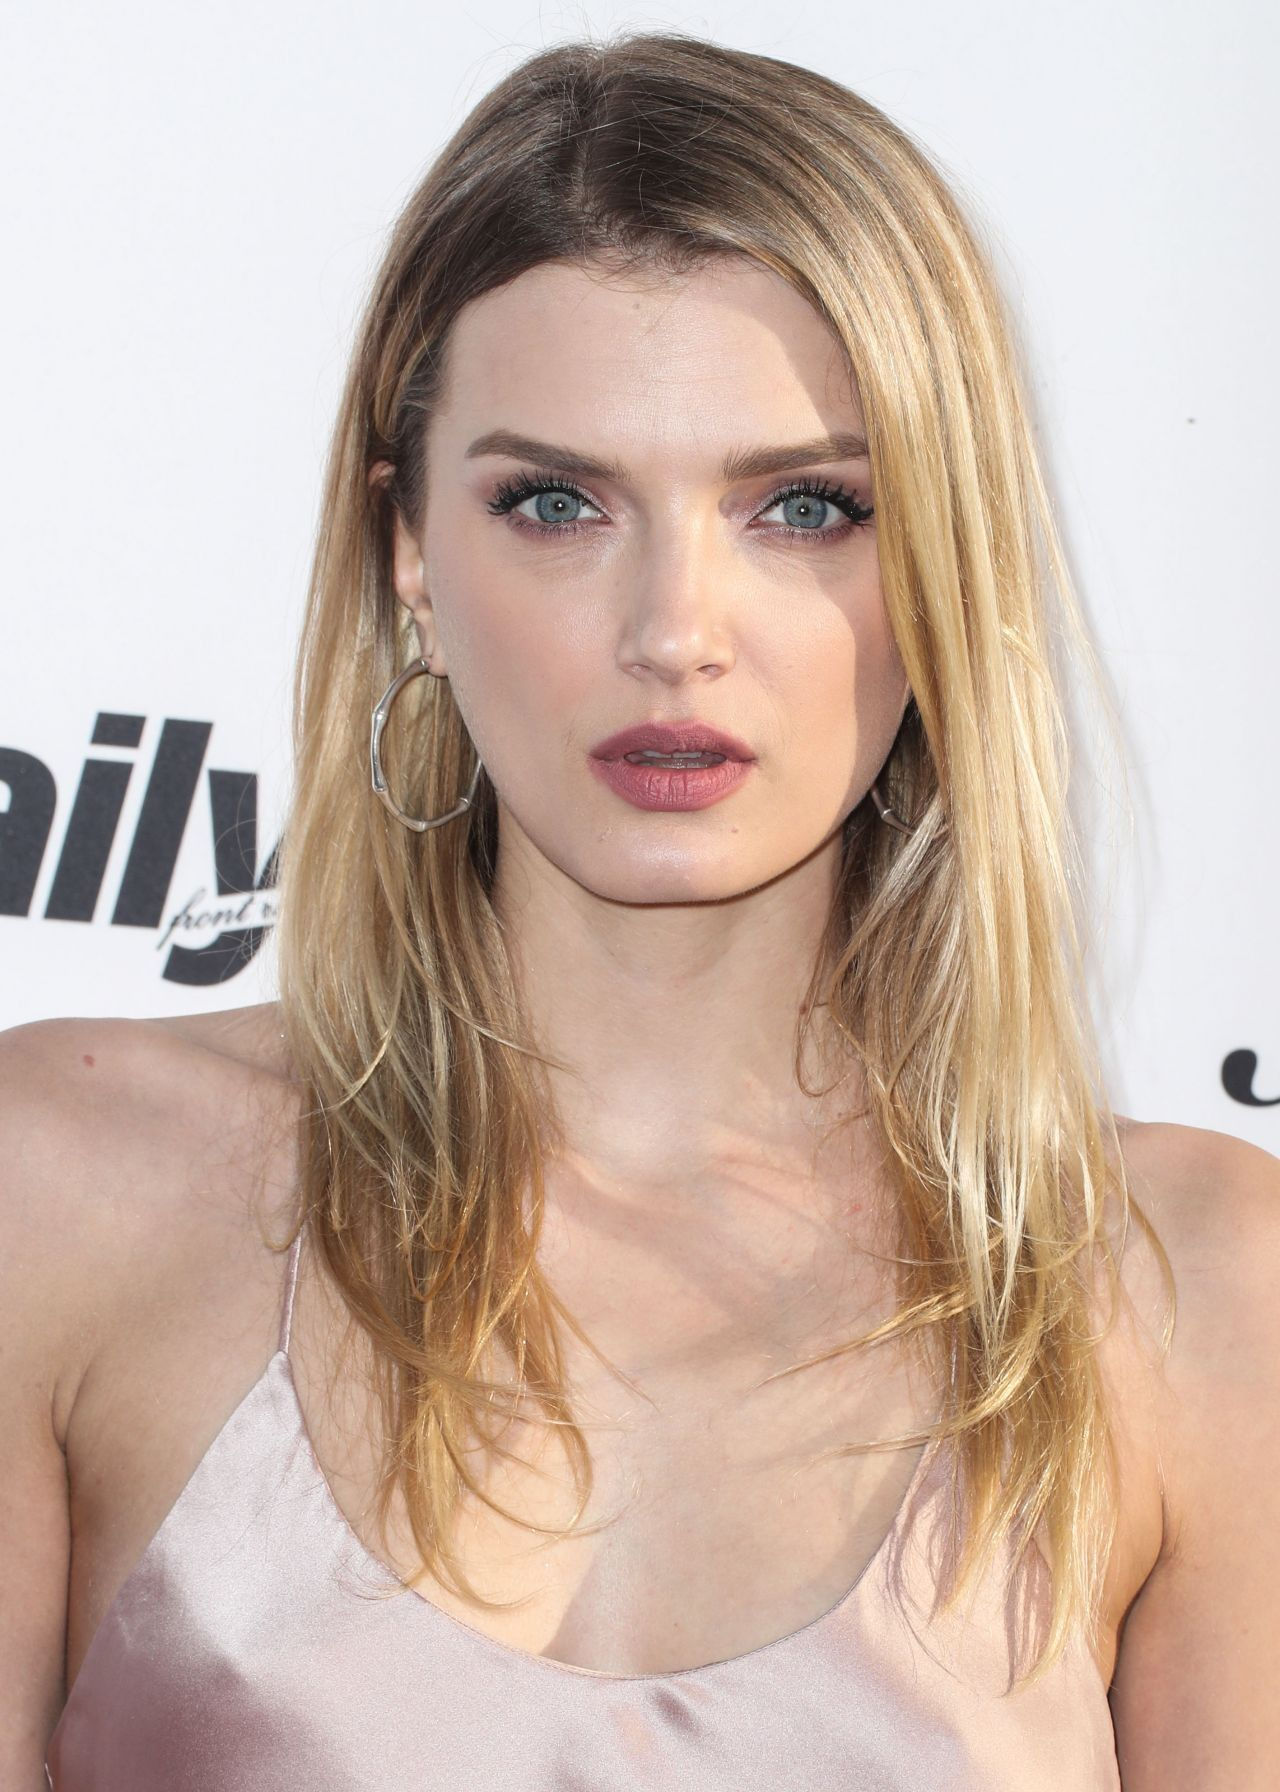 Cool Lily Donaldson - Cool Lily Donaldson